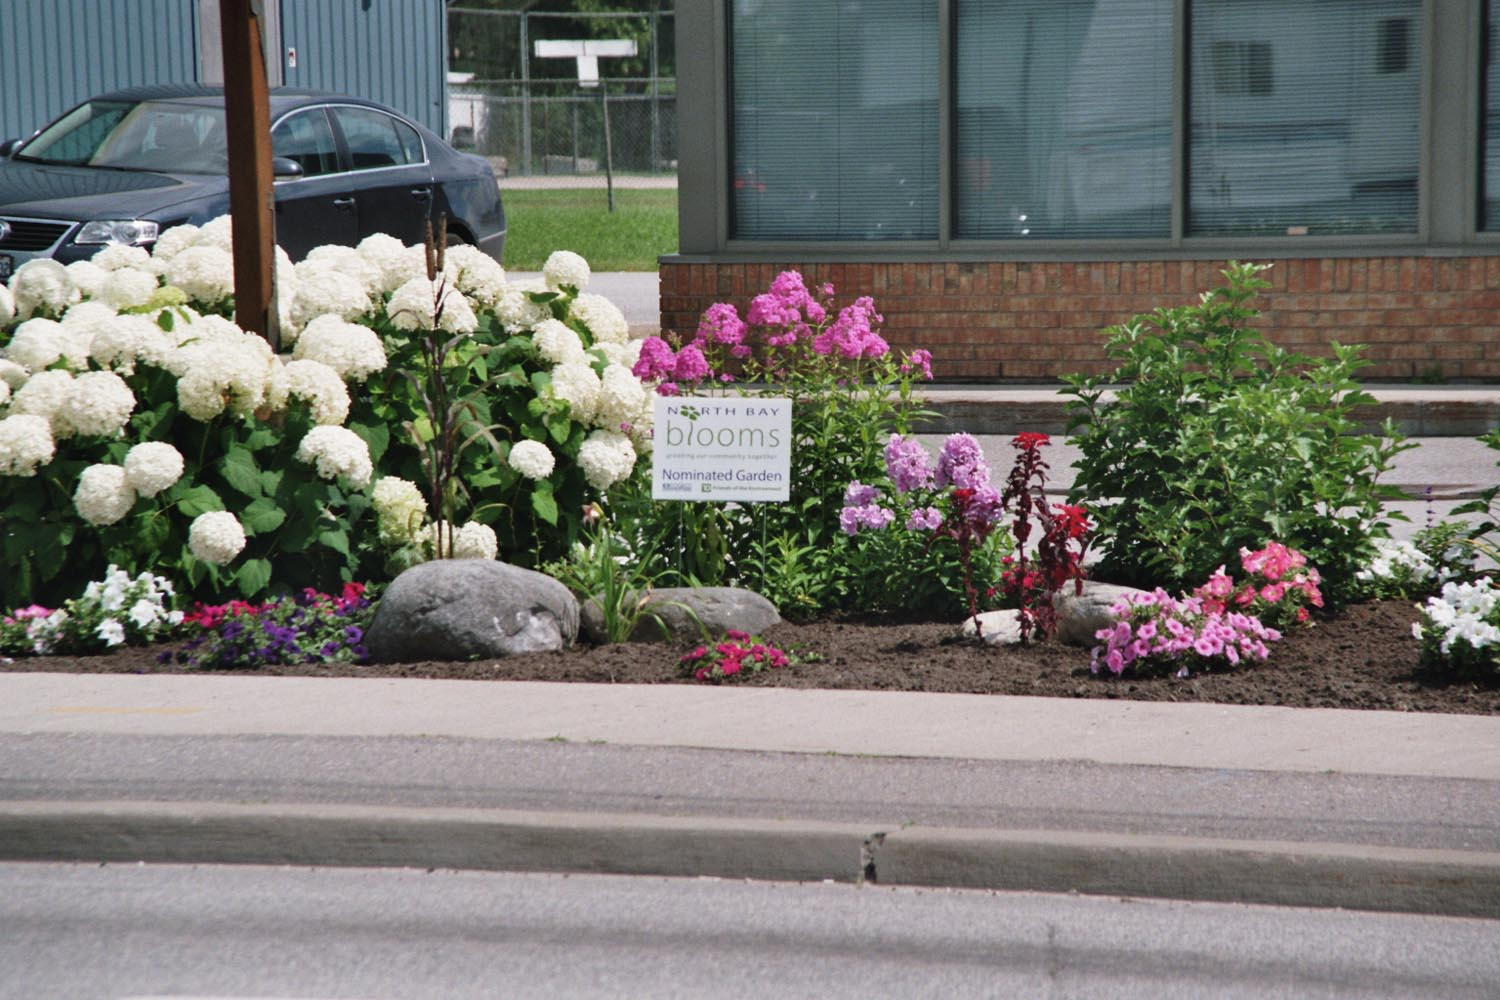 Winner Gardens in Bloom North Bay Audiology Clinic